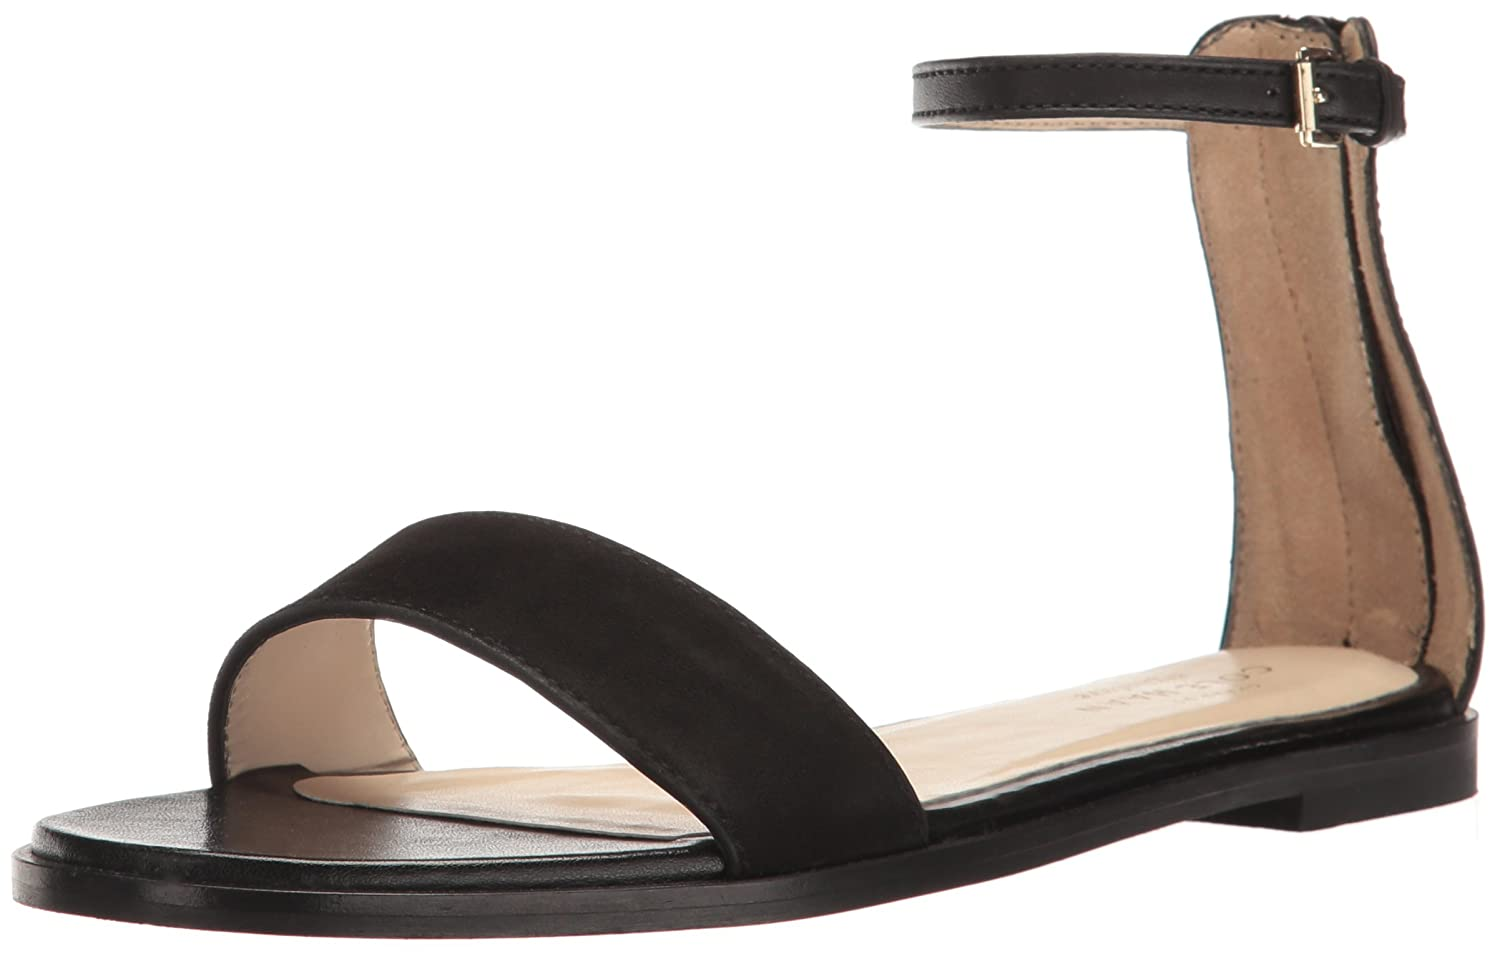 Cole Haan Women's Bayleen Ii Dress Sandal B01MRIV4LH 6.5 B(M) US|Black/Black